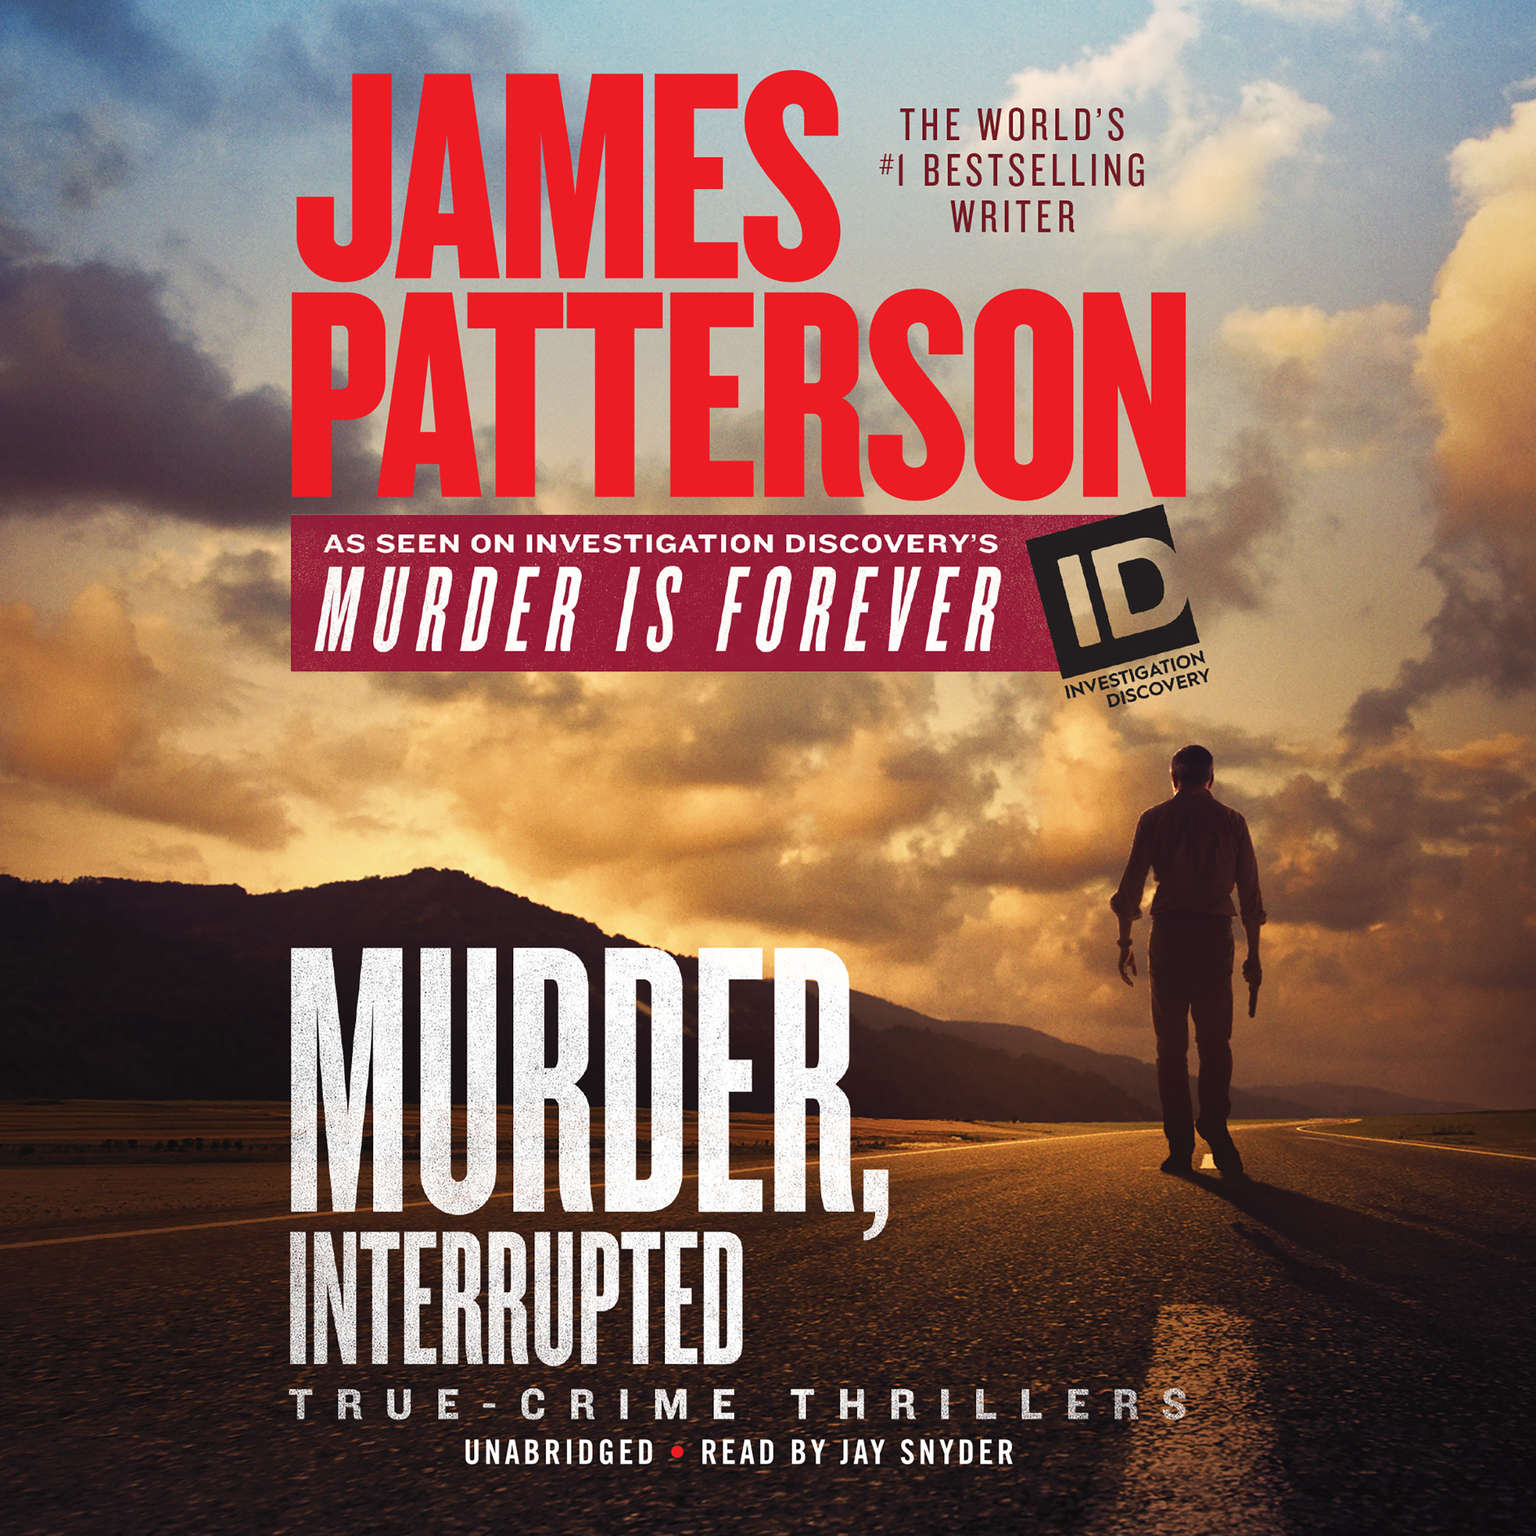 Murder, Interrupted Audiobook, by James Patterson